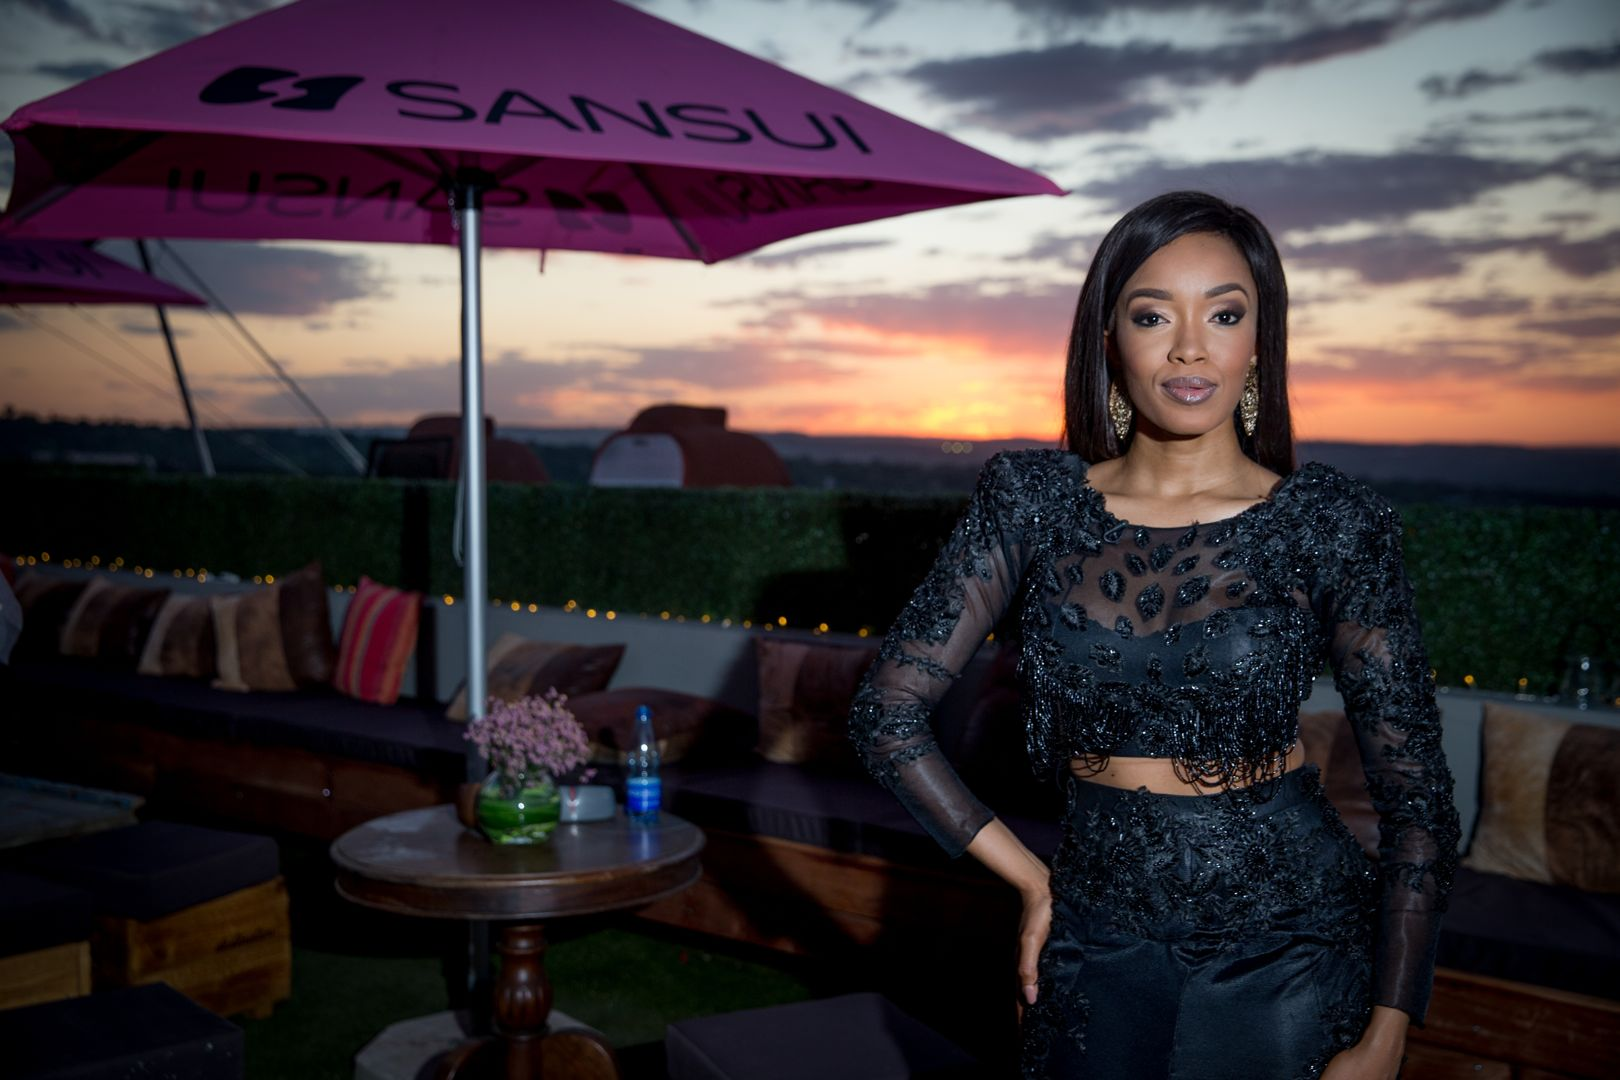 GAUTENG SANSUI SUMMER CUP launches Johannesburg's premier horseracing event in style